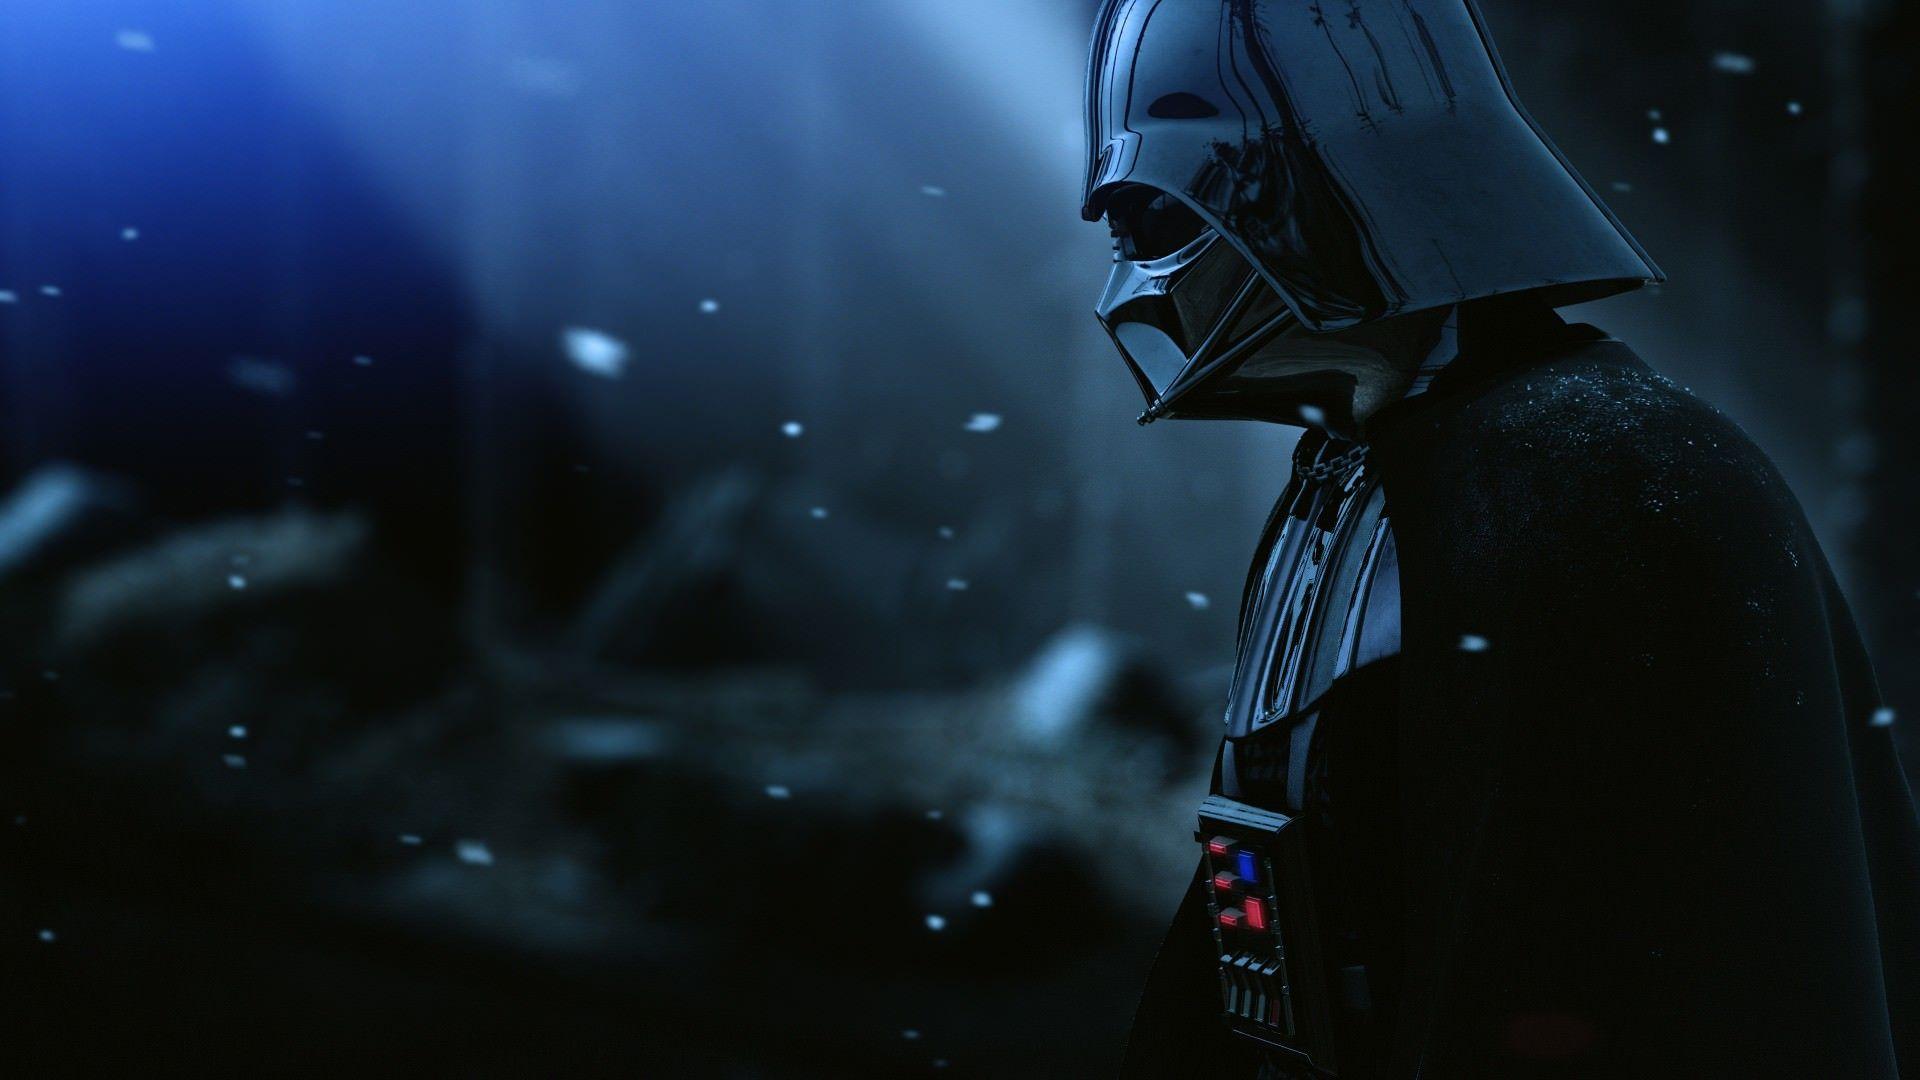 Star Wars Wallpapers Top Free Star Wars Backgrounds